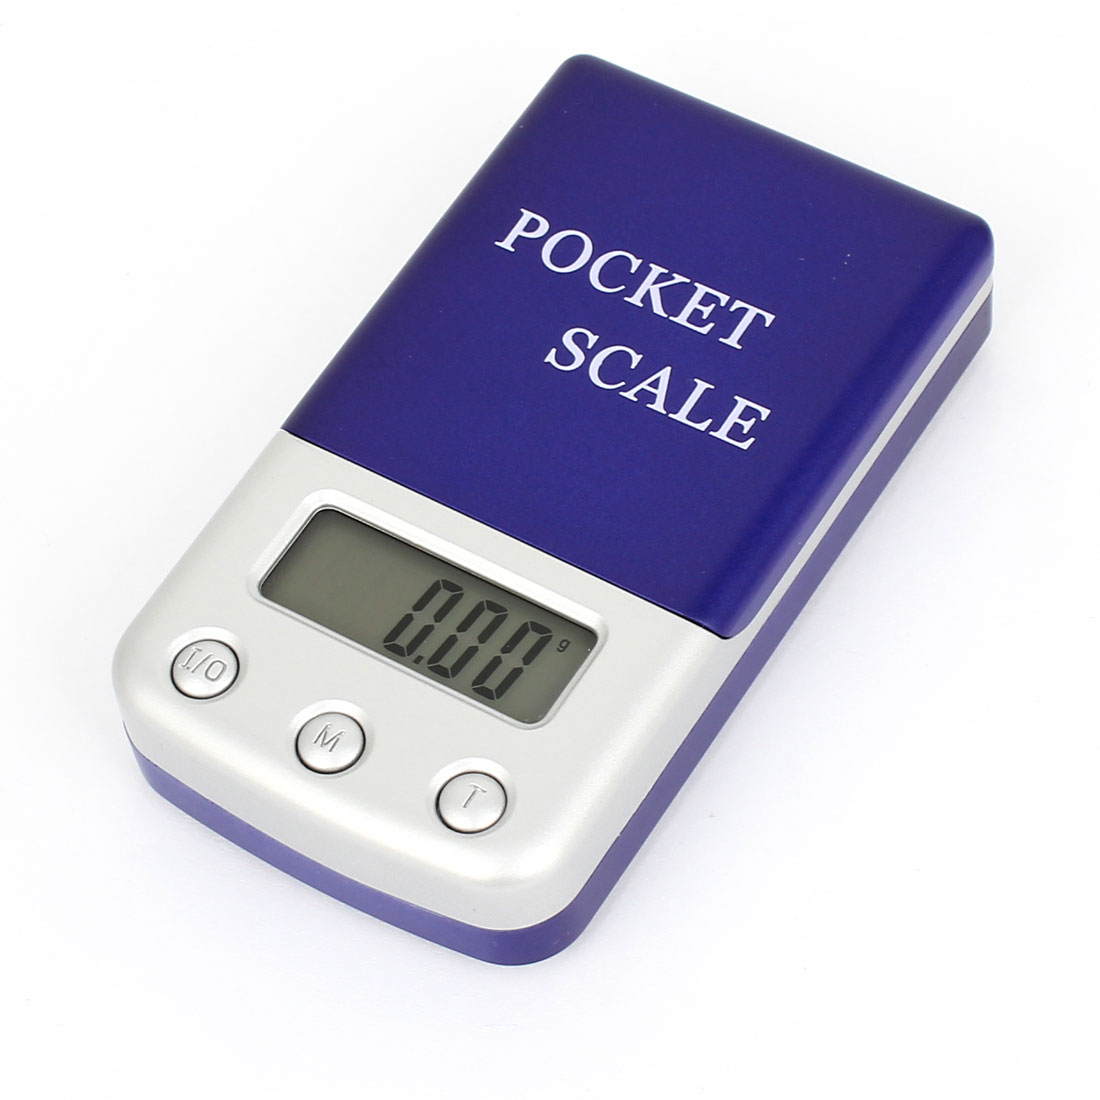 Handheld 100g x 0.01g Jewelry Weight Balance Digital Pocket Scale Dark Blue